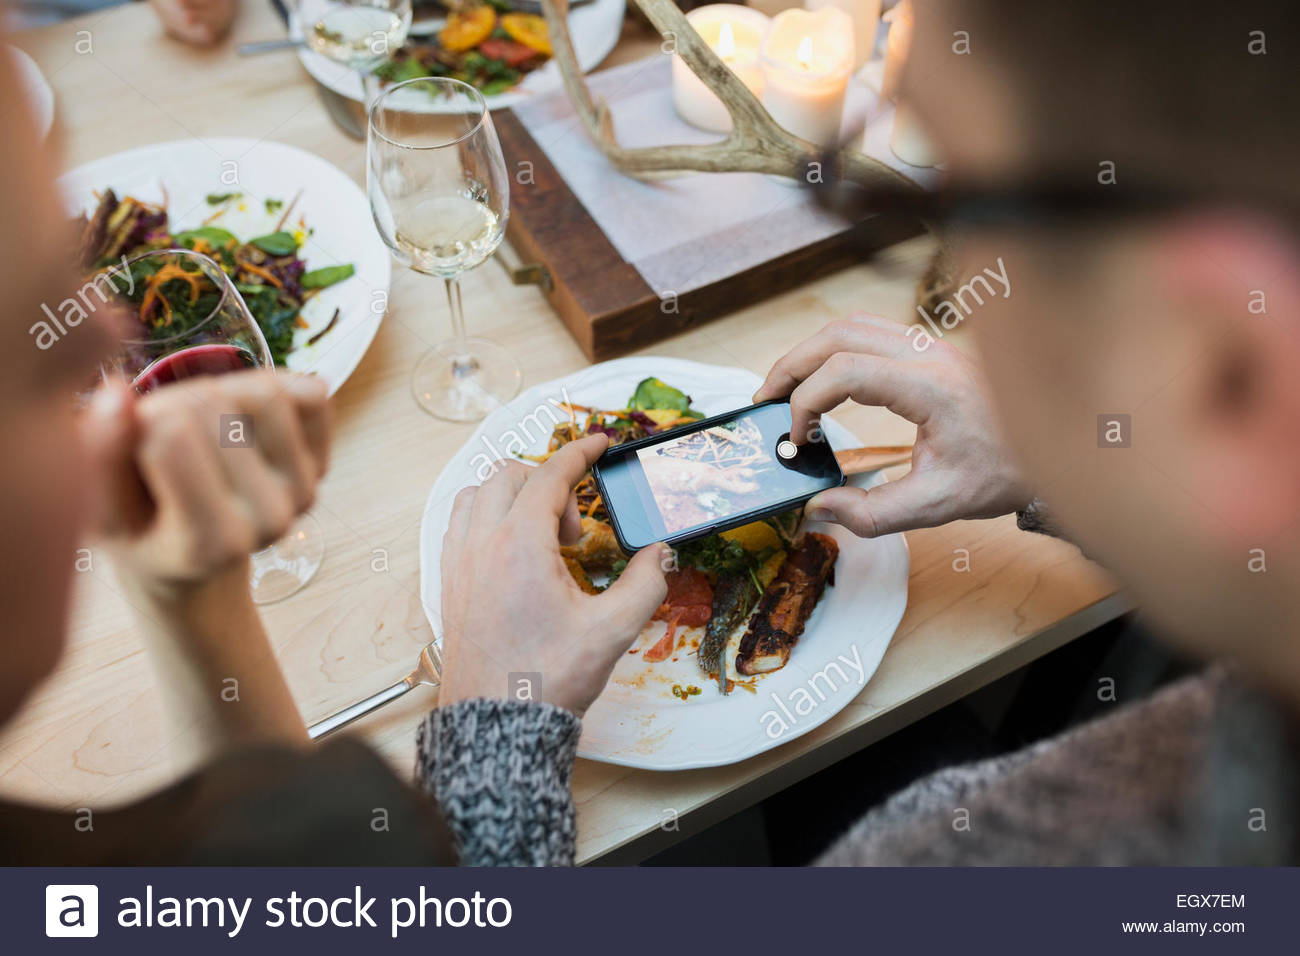 Man photographing plate of food at restaurant table - Stock Image